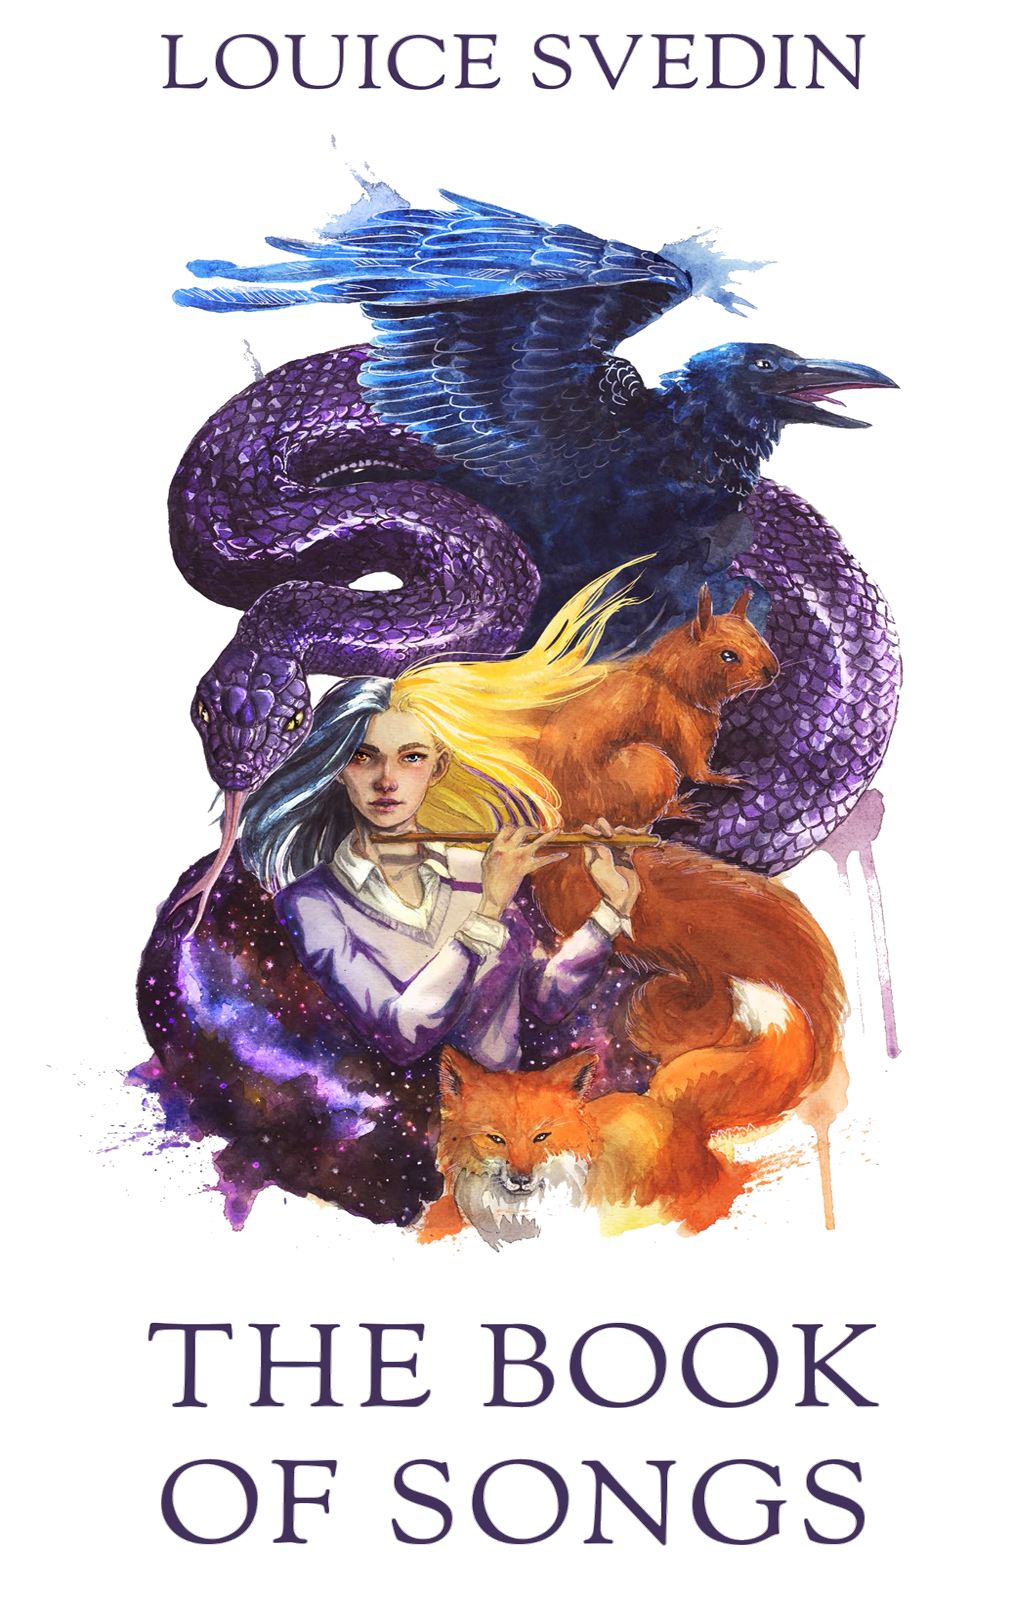 A woman holding a flute with long hair stares out.  One half of her hair is gray and one half is blonde.  Behind her is a squirral whose tail merges with a fox on front of her.  There is a blue crow and a purple snake behind her, almost engulfing her.